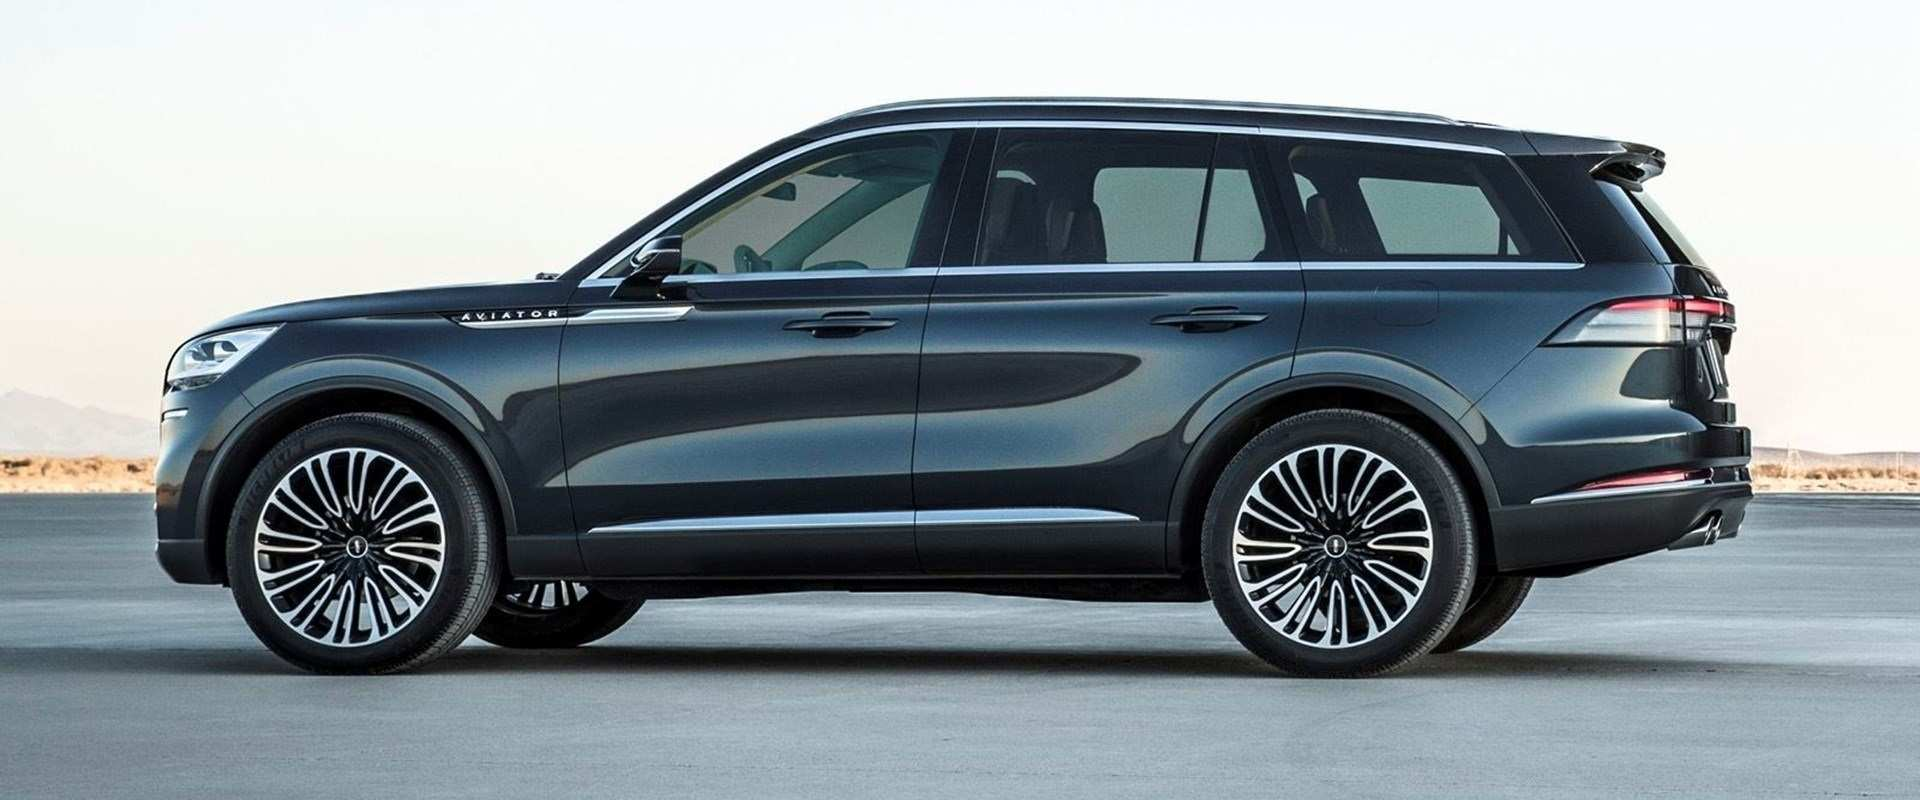 52 New 2020 Lincoln Navigator Spy Shoot